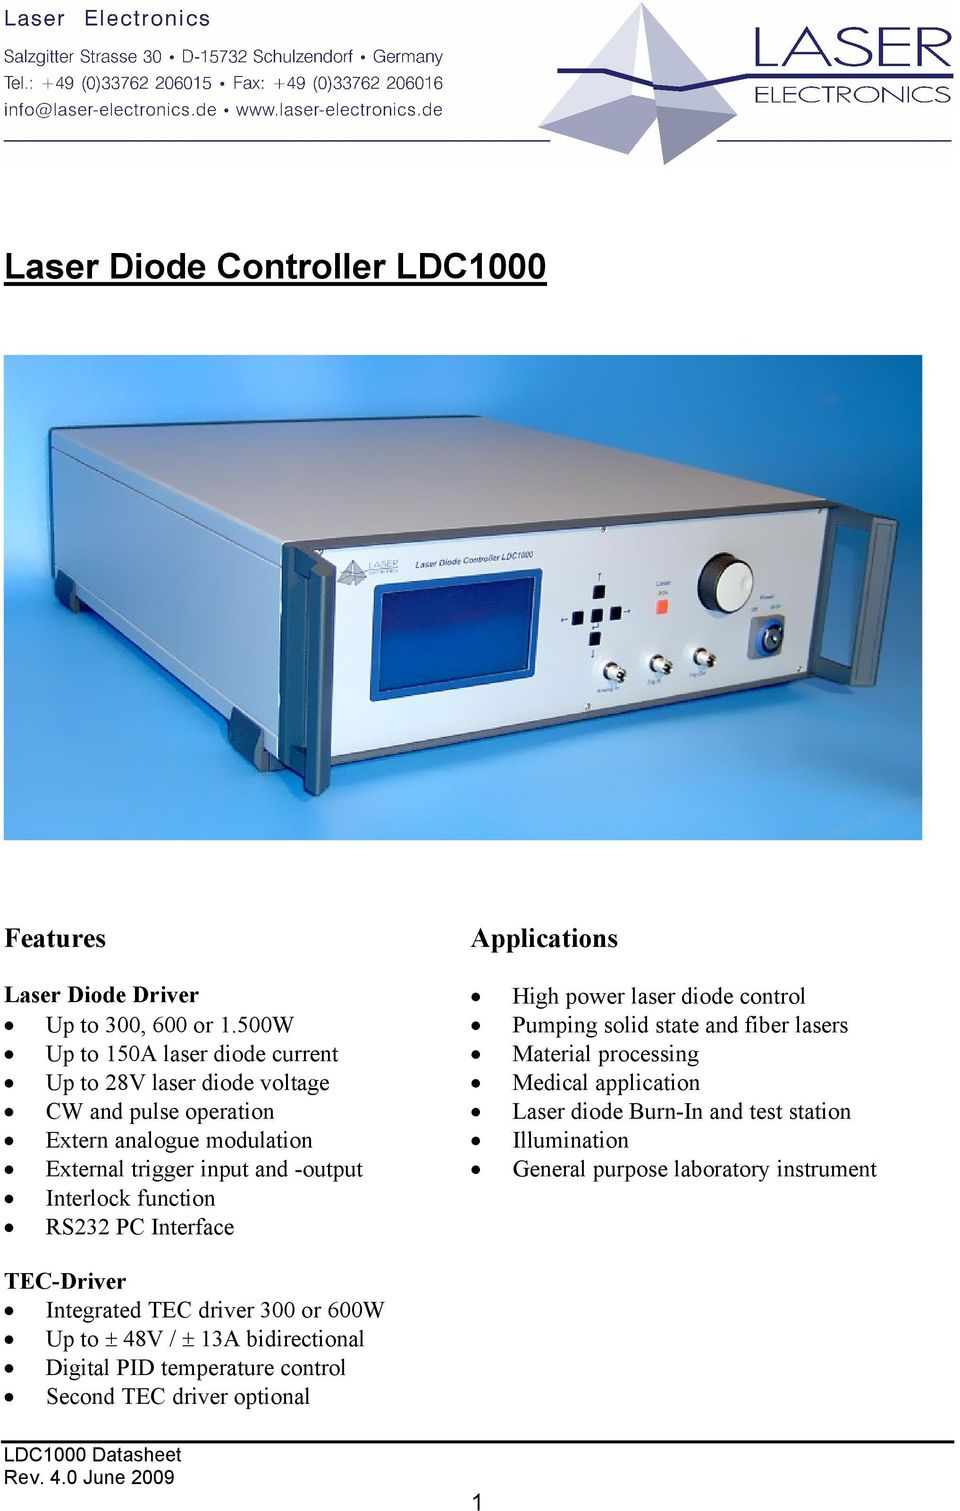 Laser Diode Controller Ldc Pdf Pulsed Driver Circuit Cost Pulse Operation Burn In And Test Station Extern Analogue Modulation Illumination External Trigger